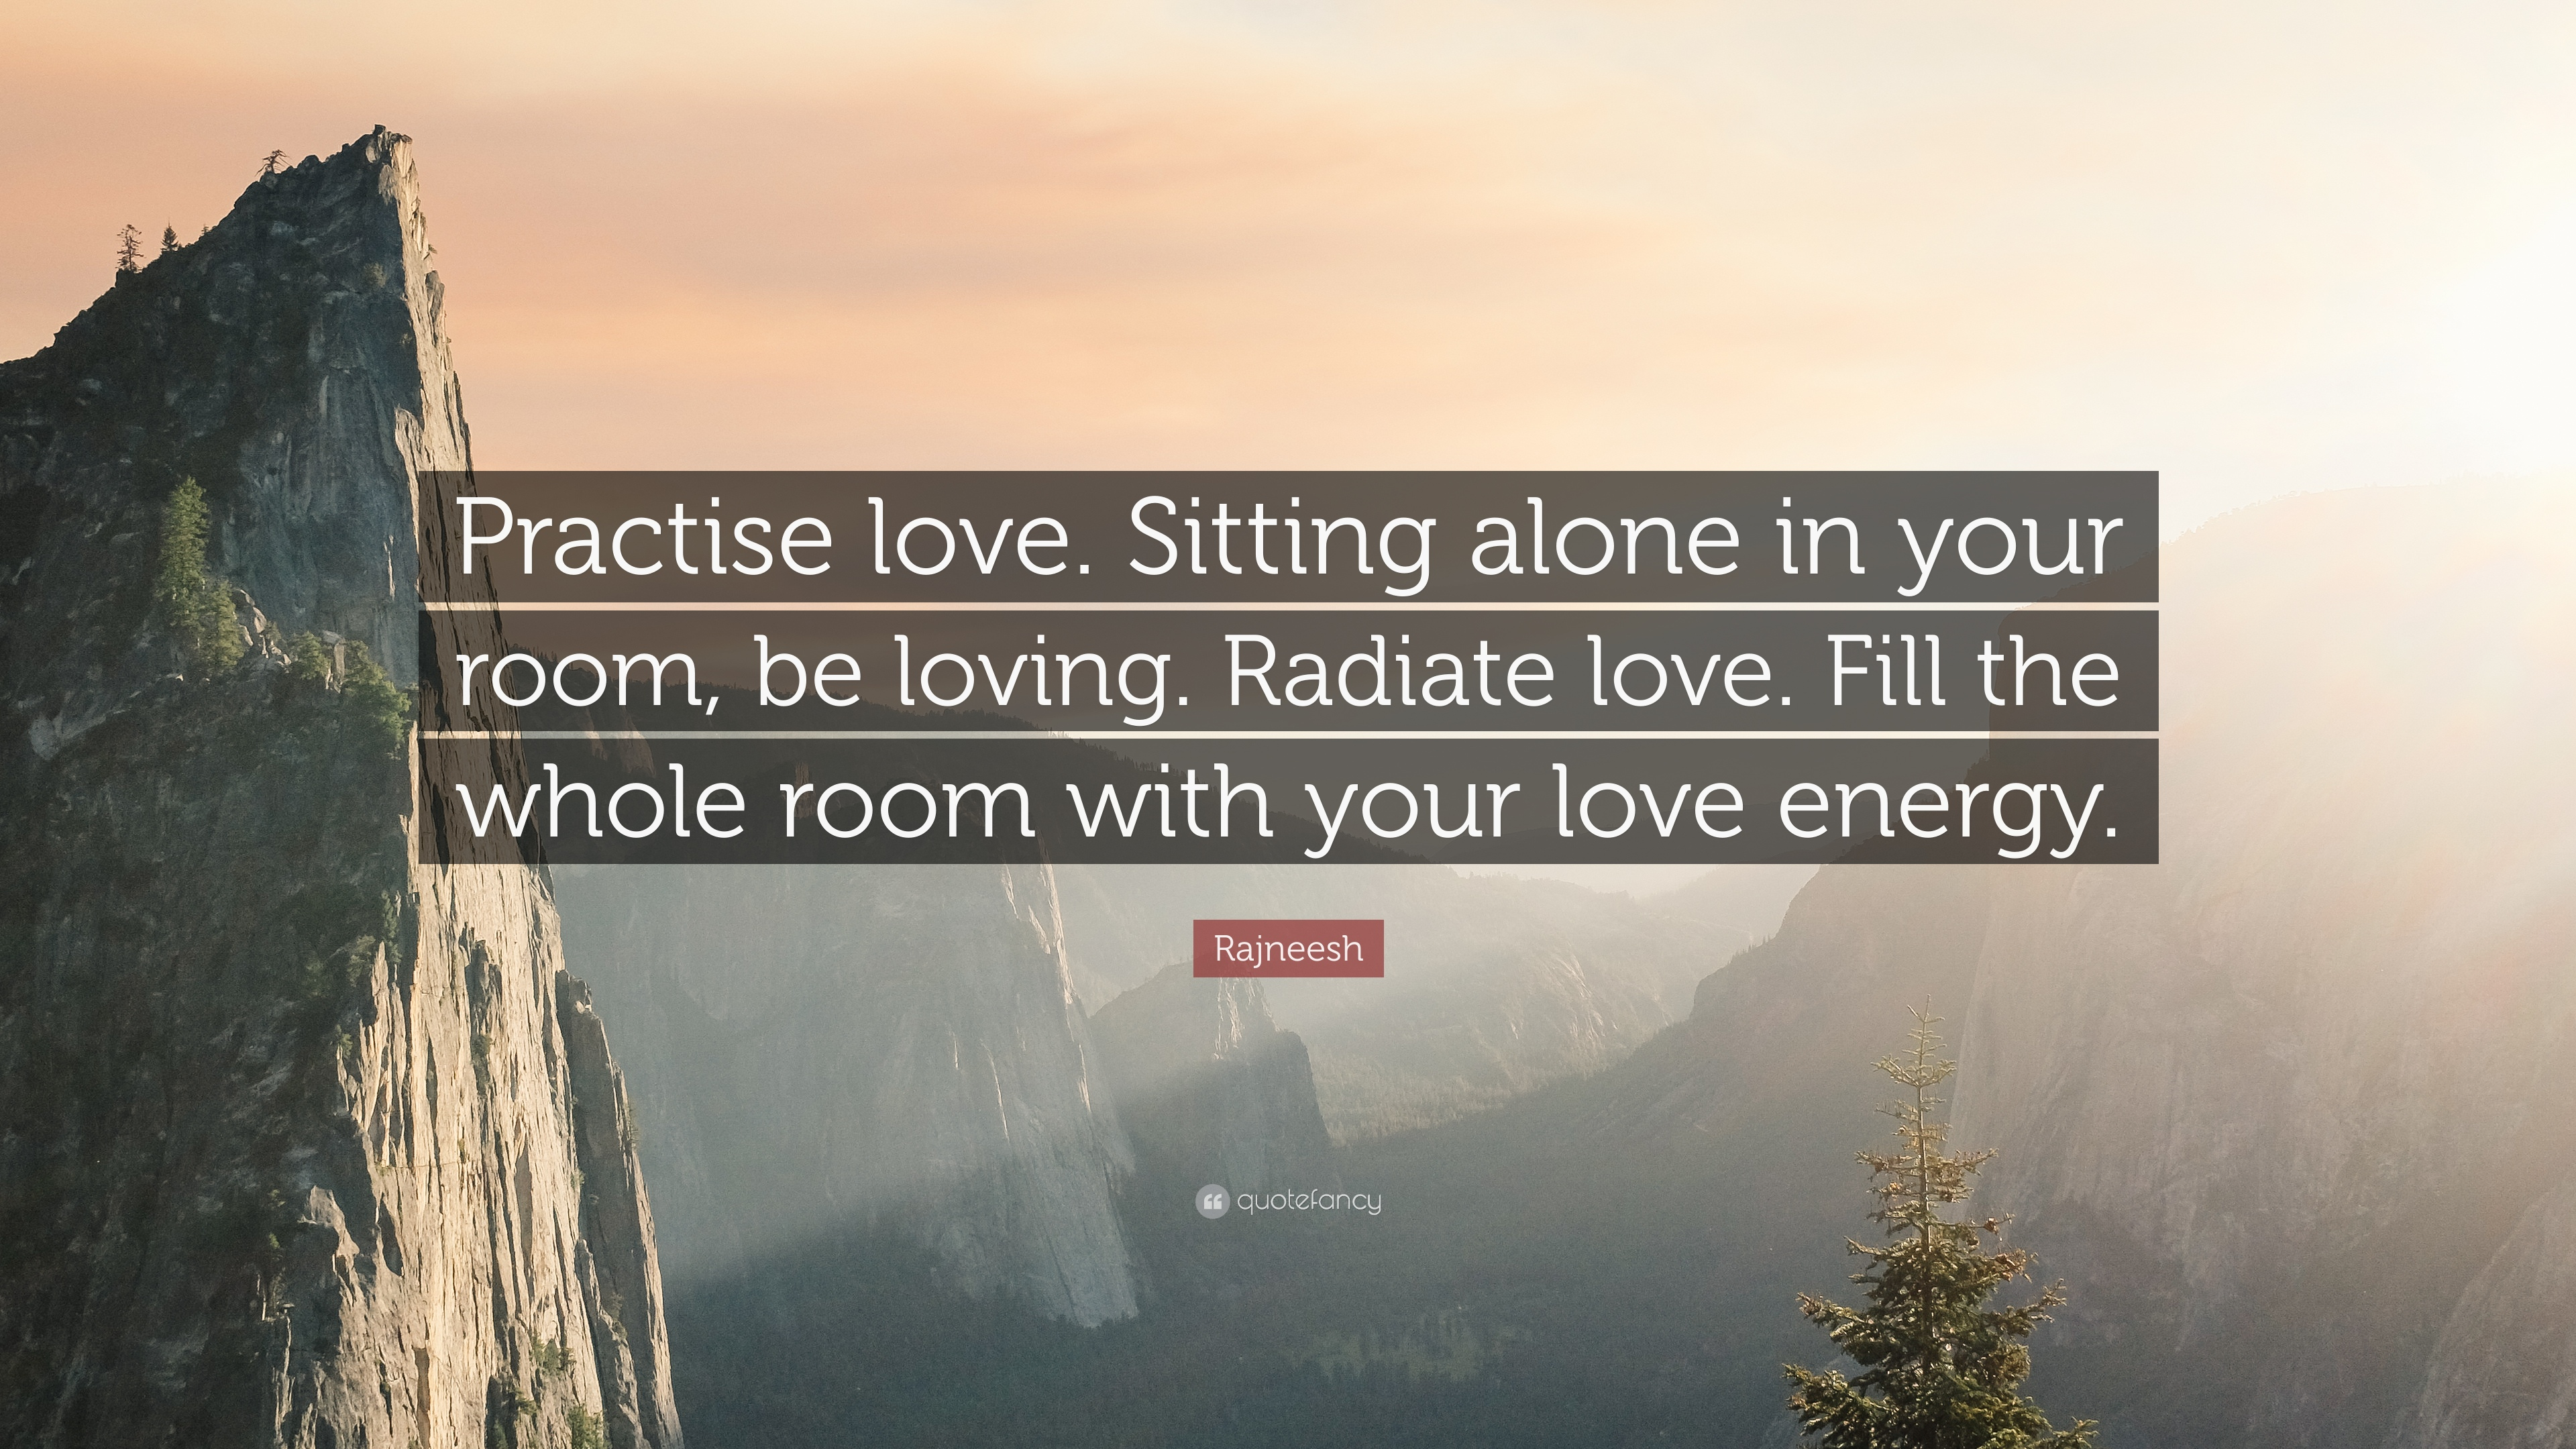 rajneesh quote practise love sitting alone in your room be